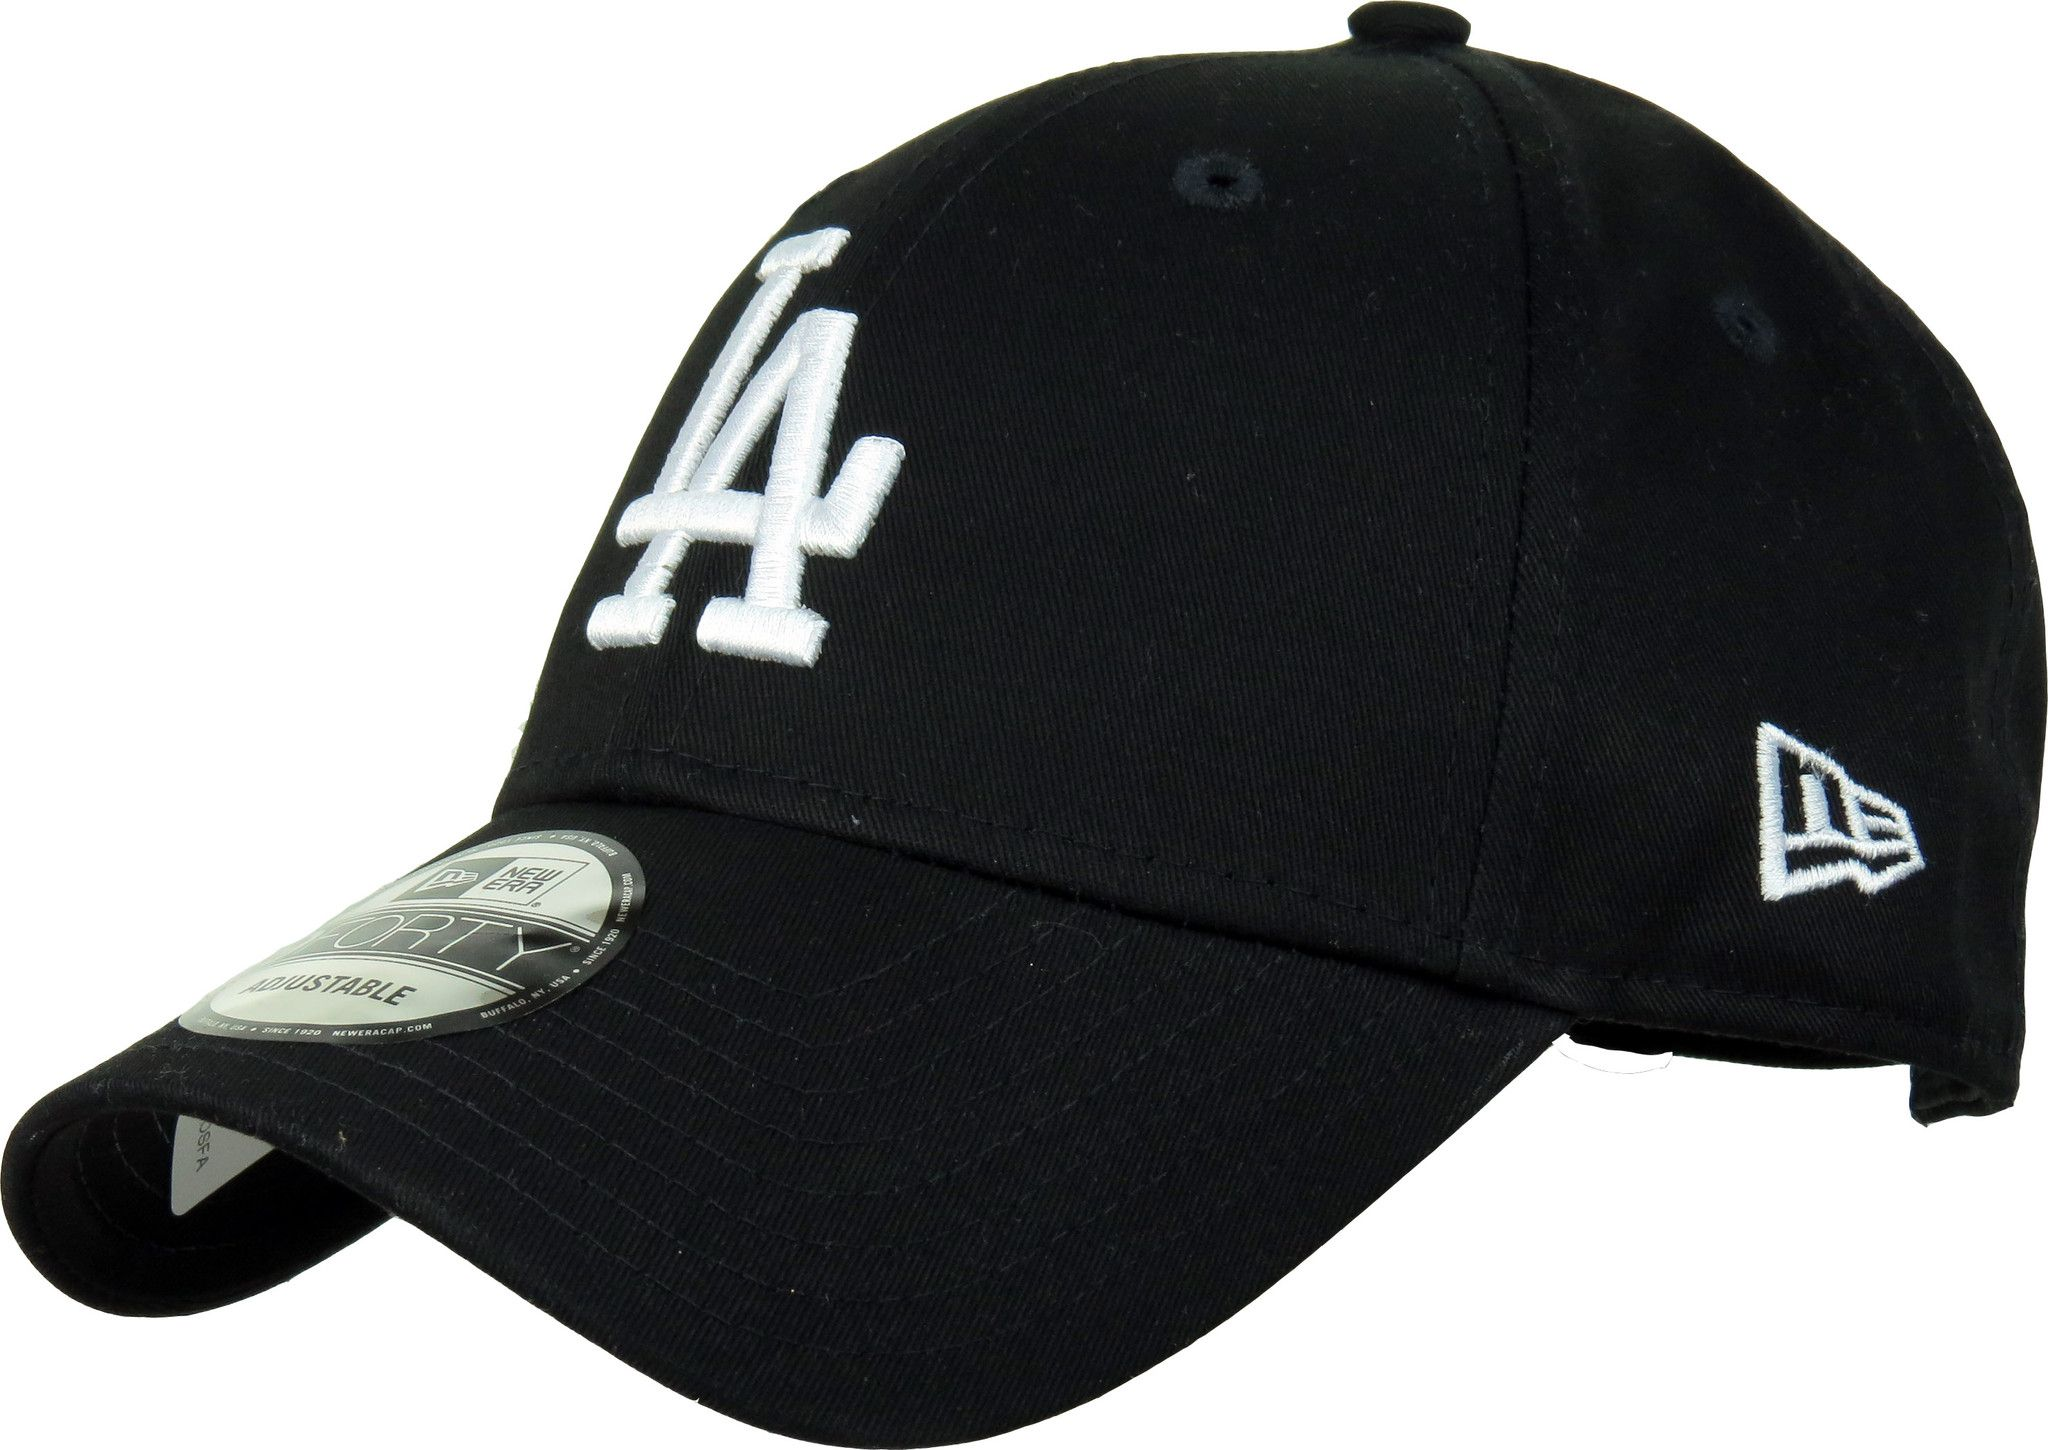 LA Dodgers New Era 940 League Essential Black Baseball Cap  697673bee35